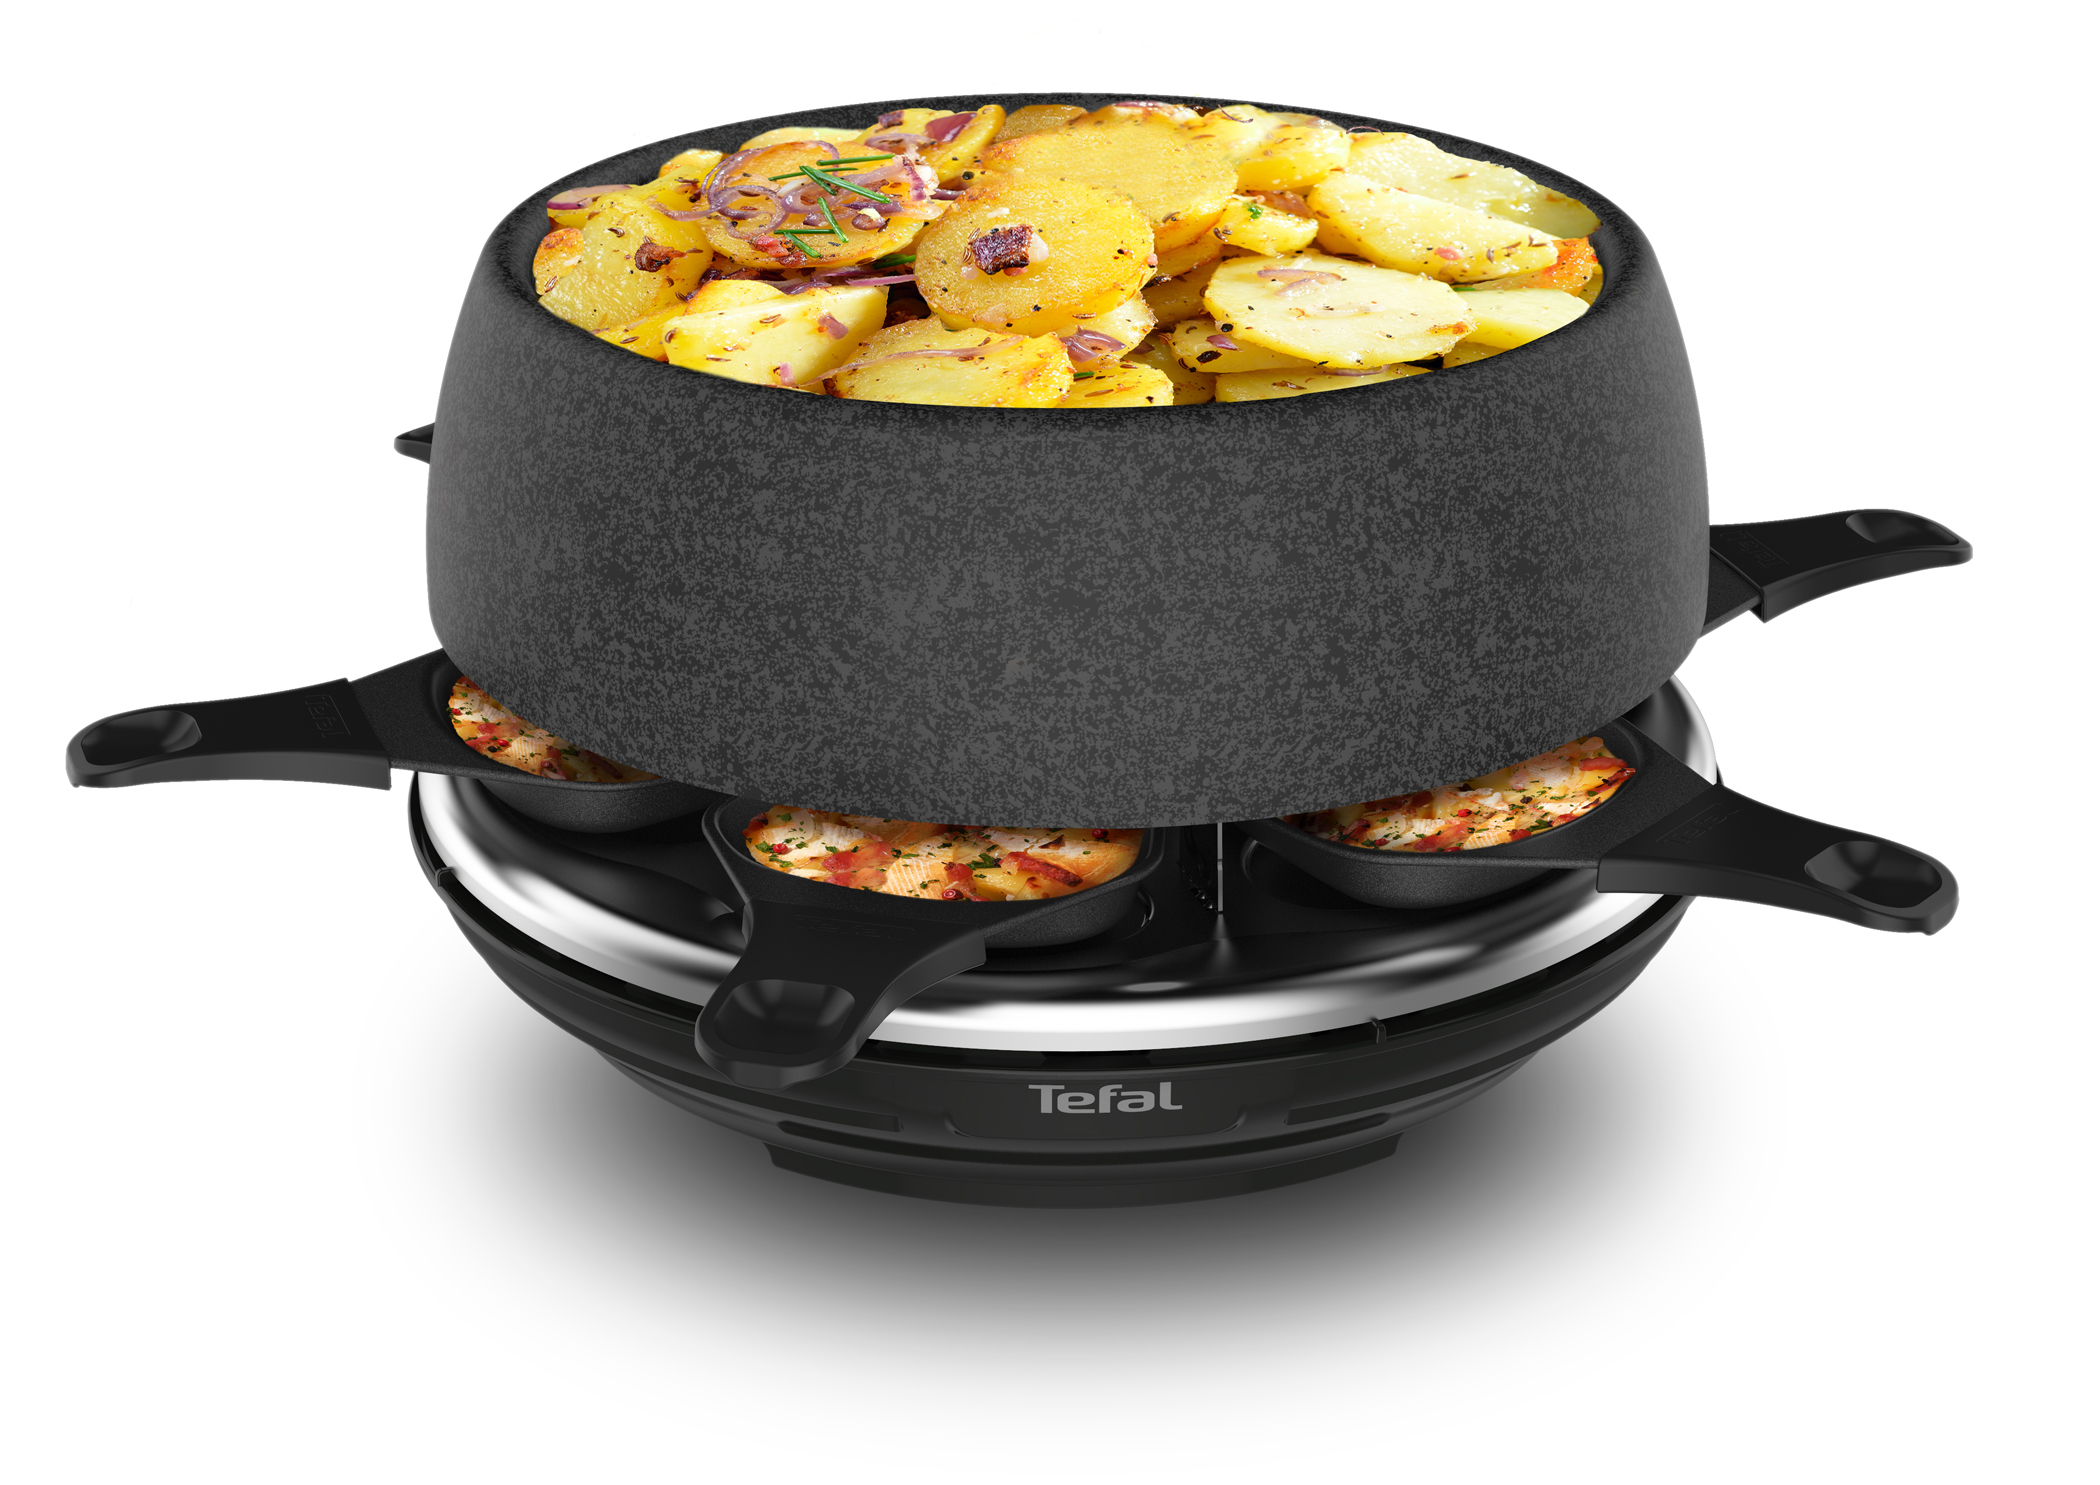 <h1>Tefal Raclette-Fondue Cheese 'n Co</h1><h3 style='font-size: 20px; margin: 0px 0px 15px 0px;'> -6 Funktionen, Thermo-Spot</h3>